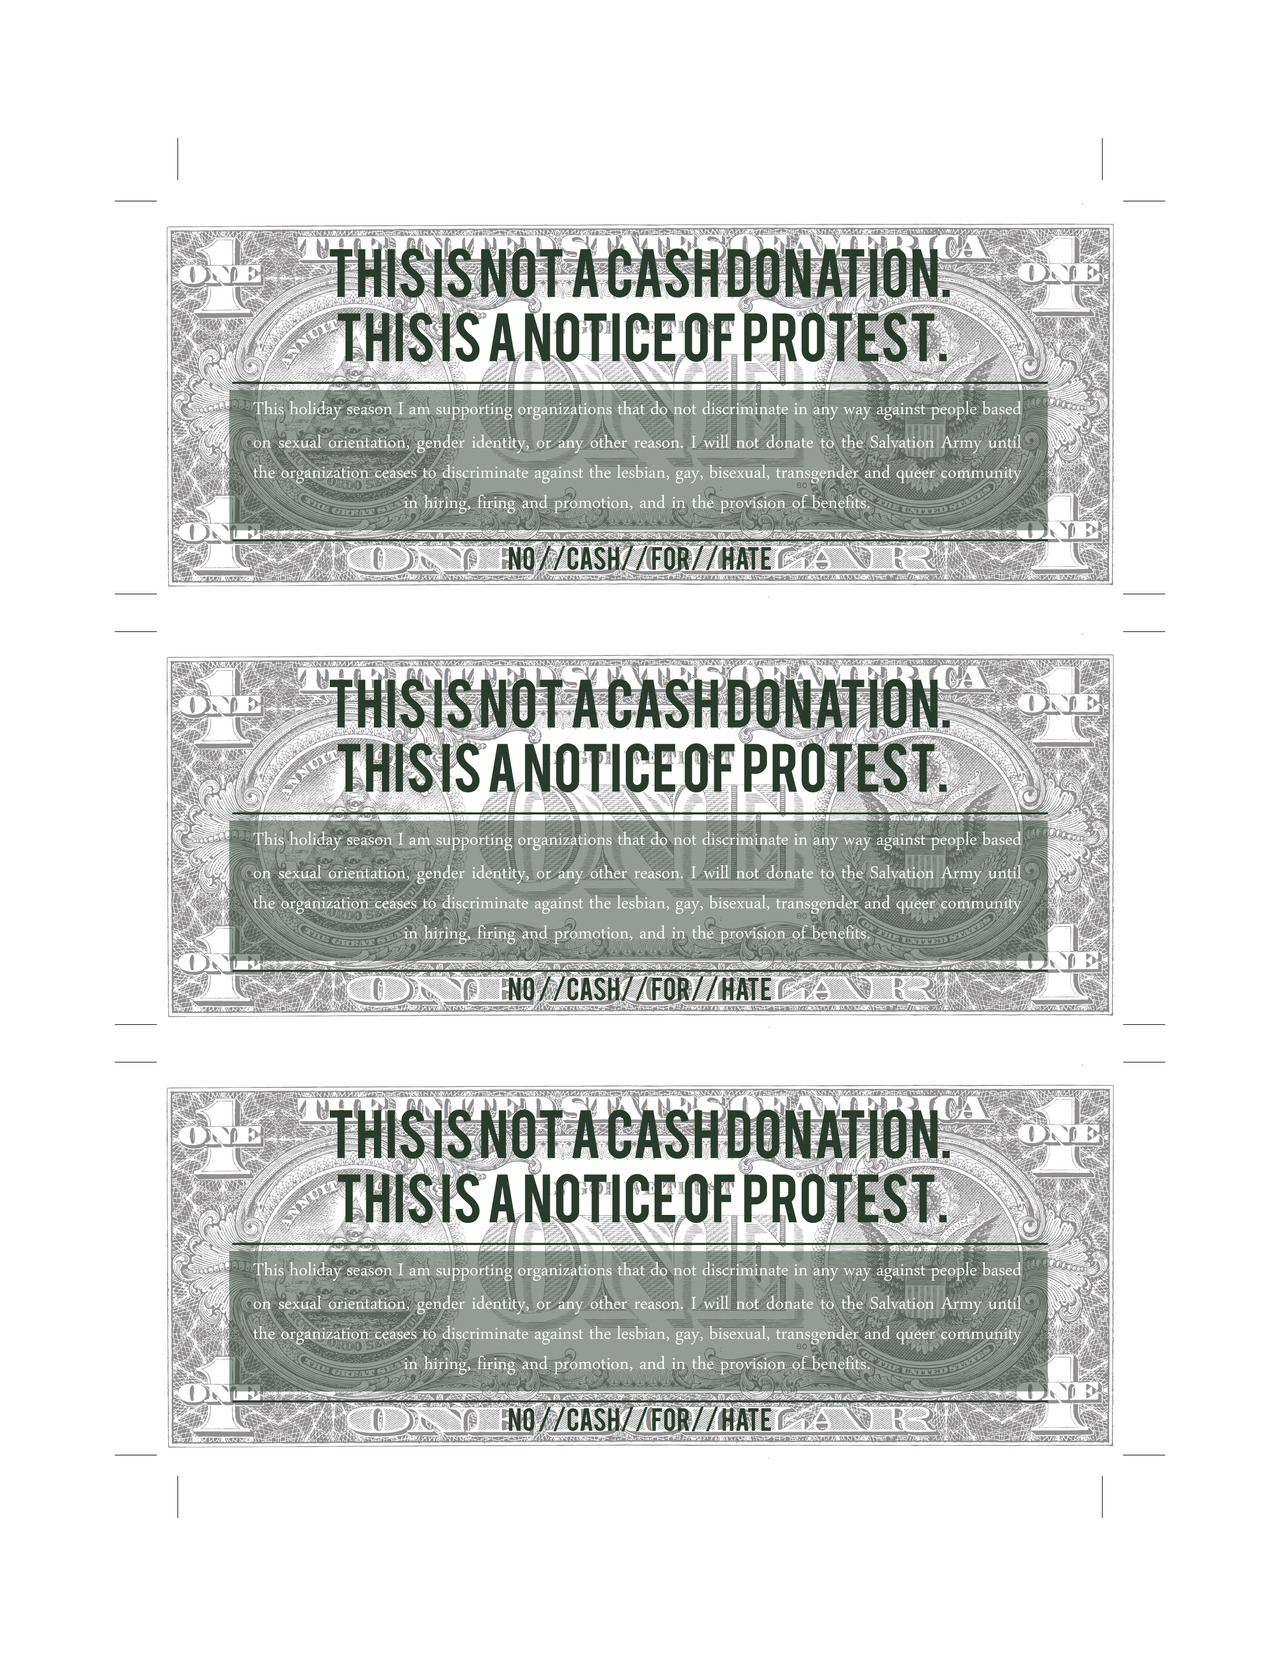 loveincolororg:  Printable Salvation Army protest vouchers. They read:  This holiday season I am supporting organizations that do not discriminate in any way against people based on sexual orientation, gender identity, or any other reason. I will not donate to the Salvation Army until the organization ceases to discriminate against the lesbian, gay, bisexual, transgender and queer community in hiring, firing and promotion, and in the provision of benefits.